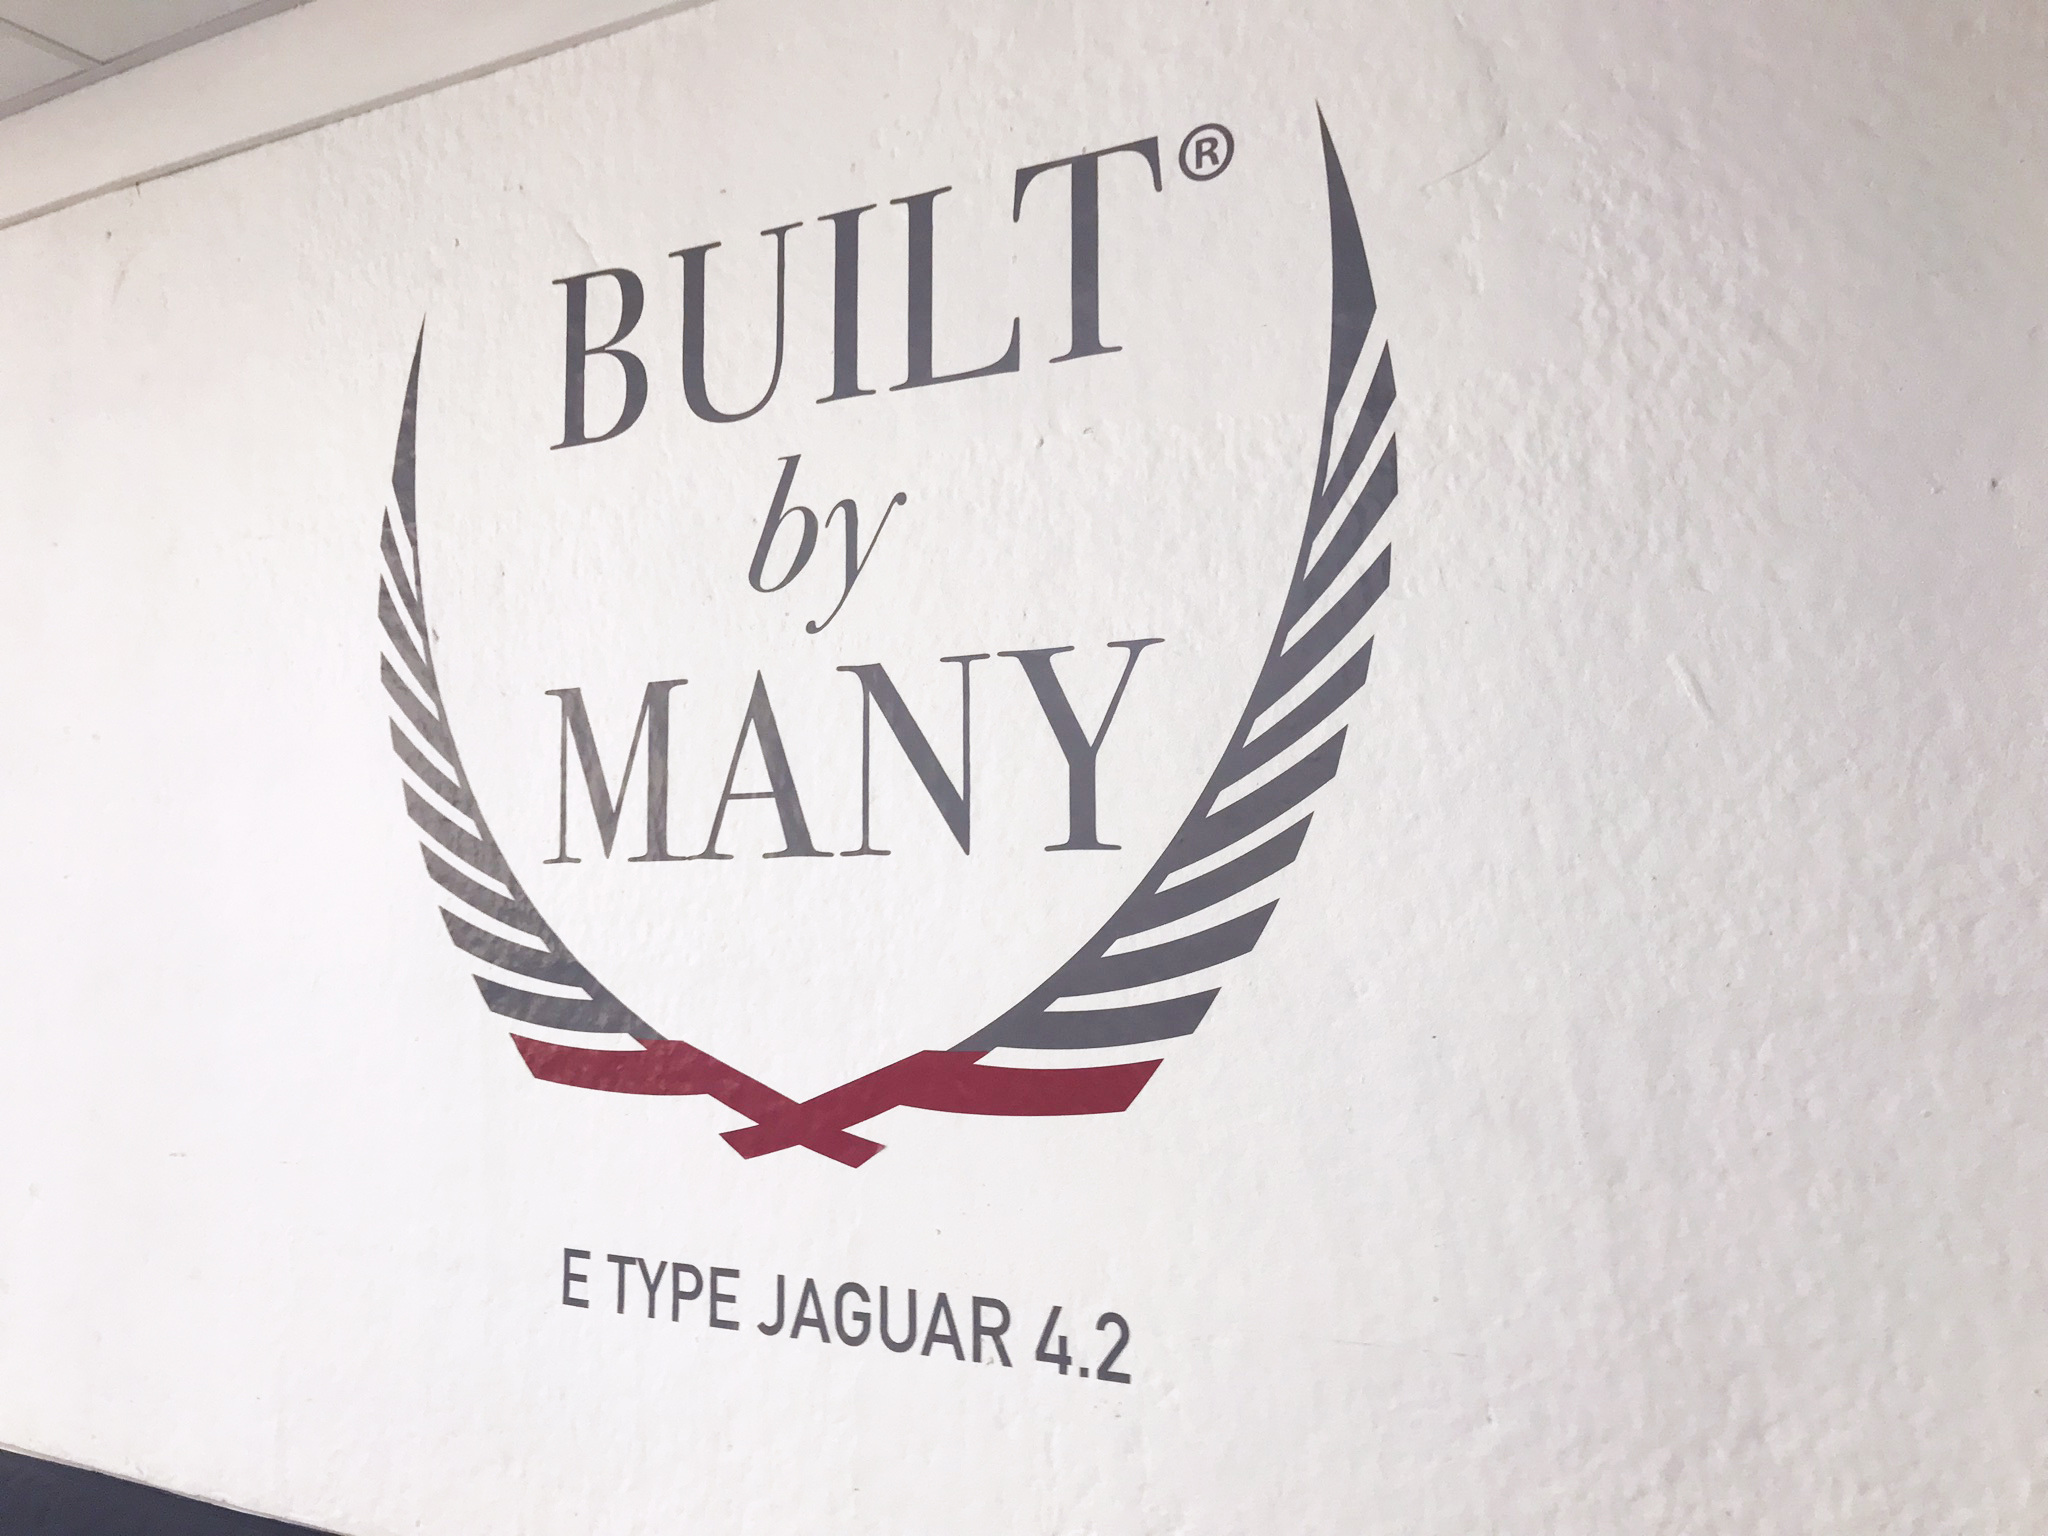 Built By Many logo on studio wall